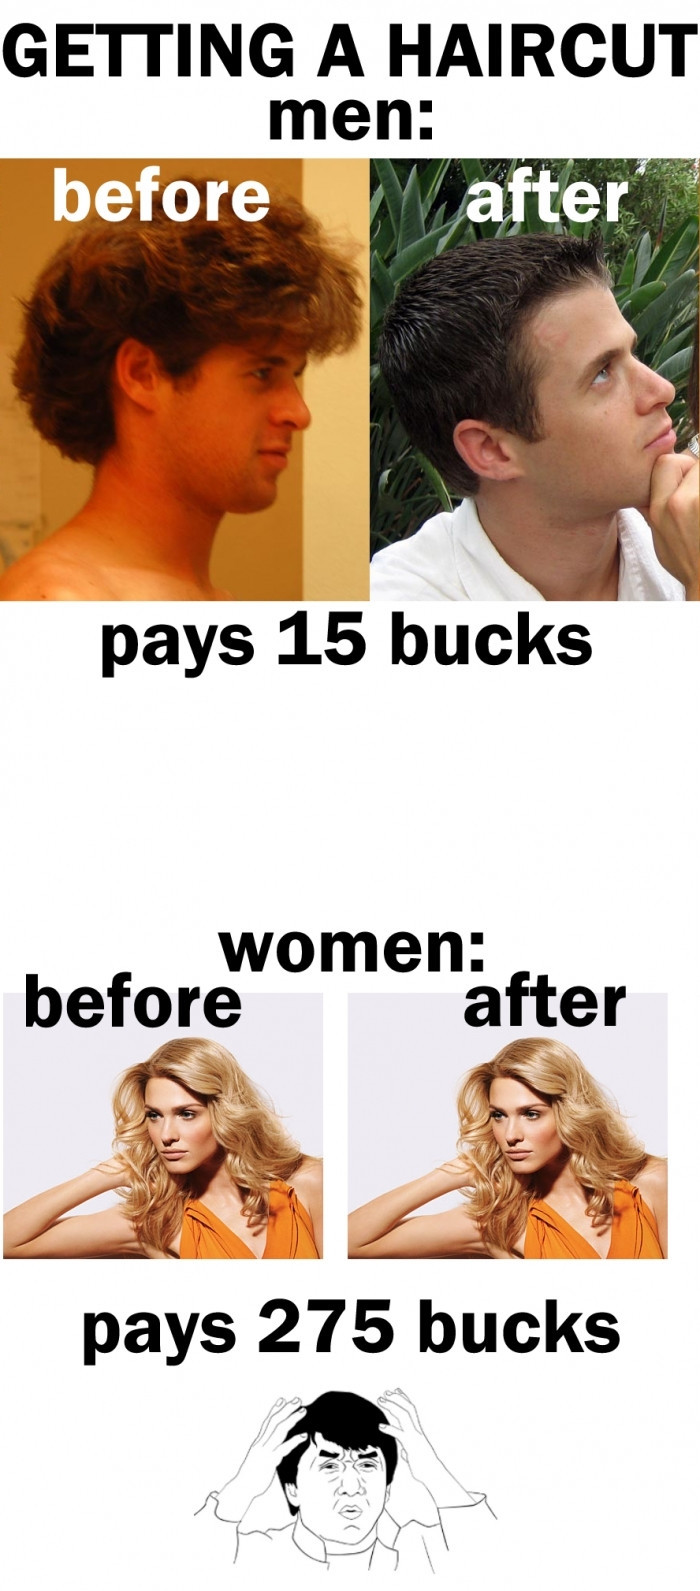 Men vs Women - Getting A Hair Cut